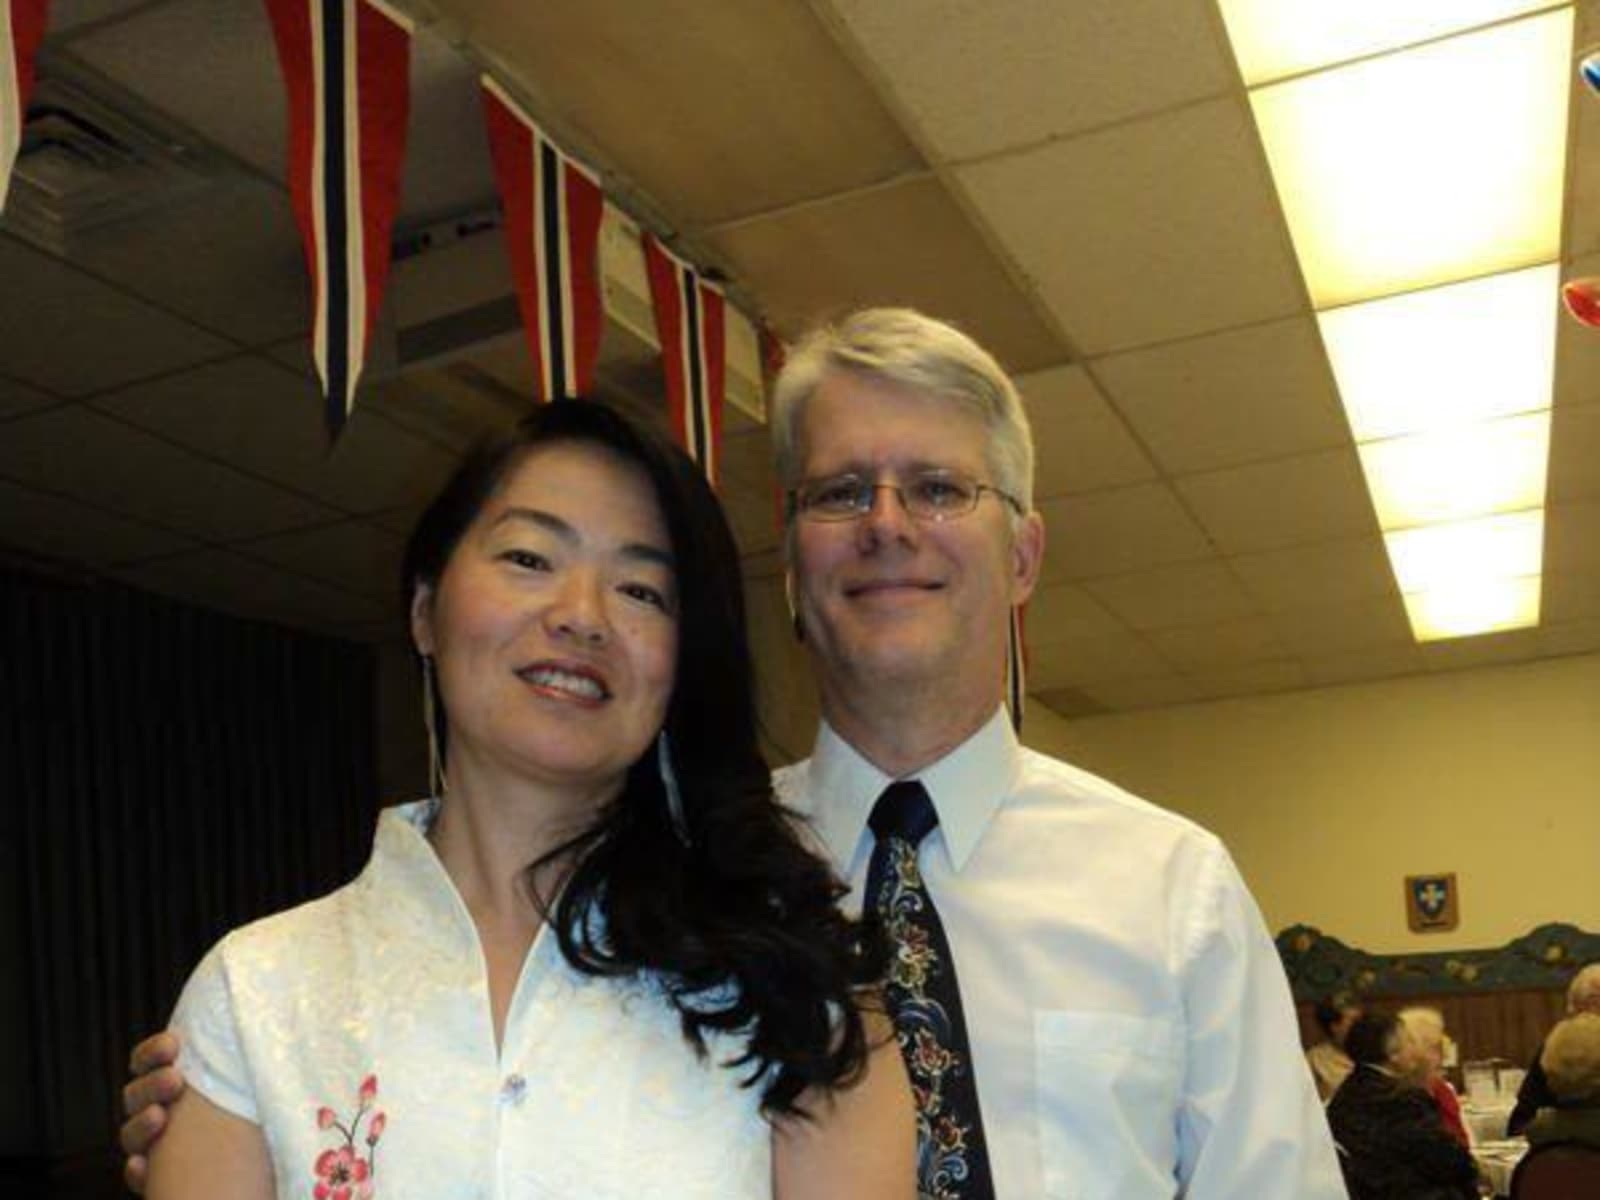 Erik & Min from Fort Collins, Colorado, United States